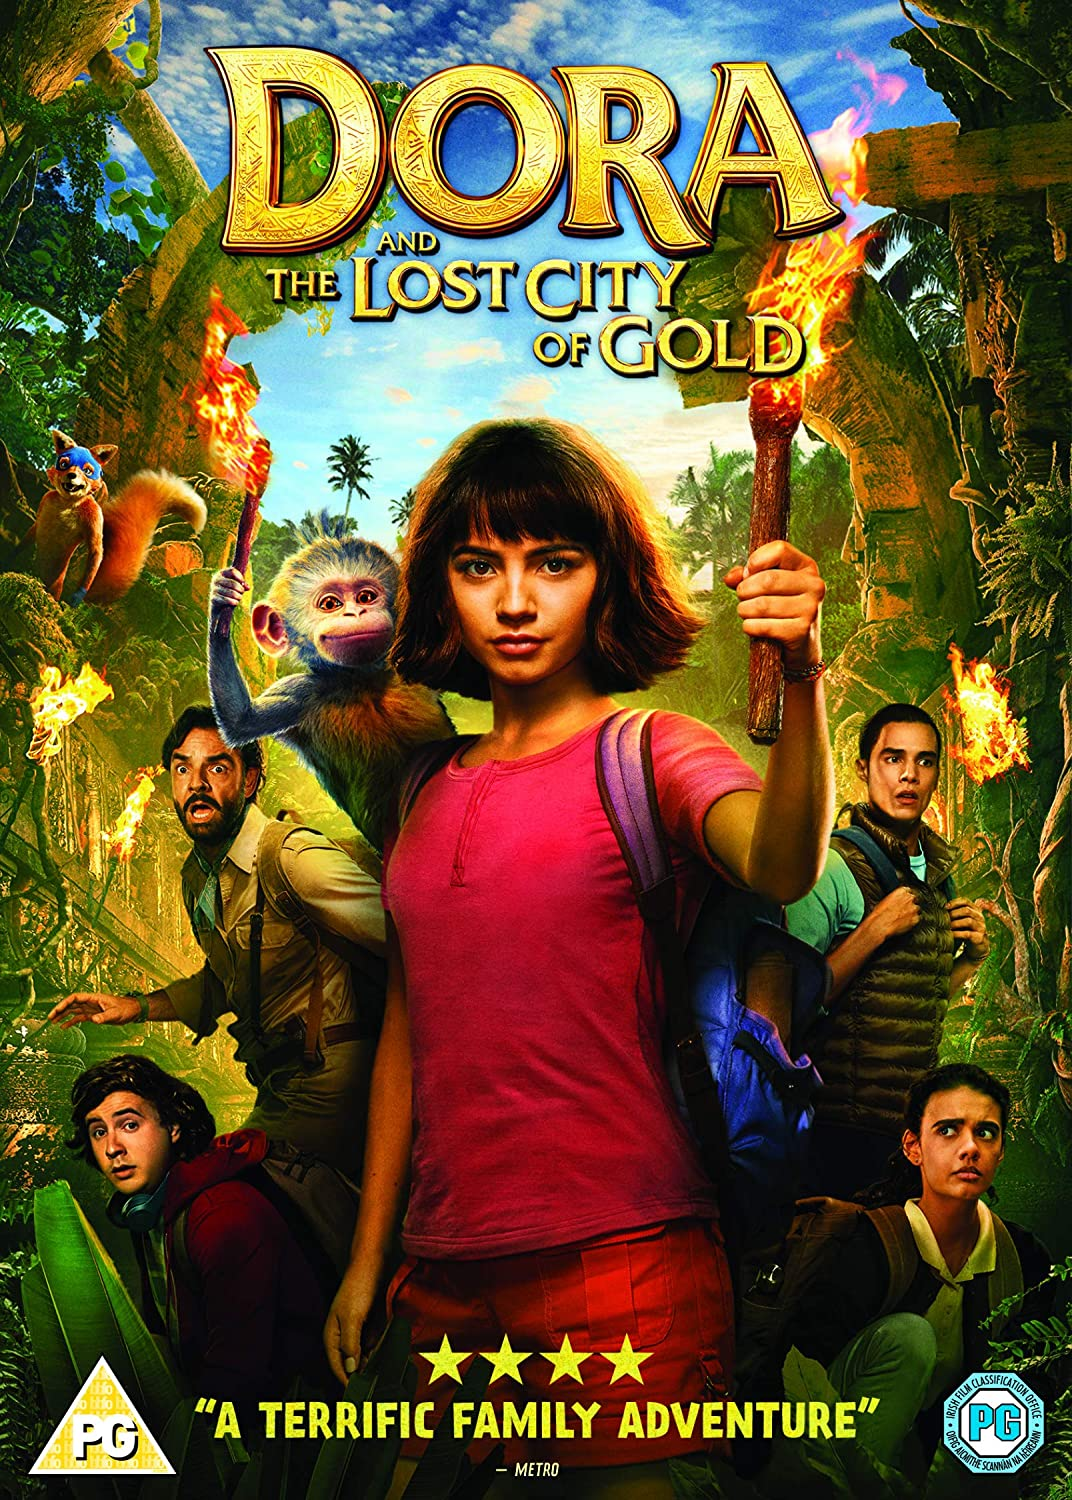 Baddie Wallpapers Of Dora Watch Dora And The Lost City Of Gold Prime Video Backpack Or Mochila In Spanish Is A Friend And Special Helper To Dora Who Helps Her